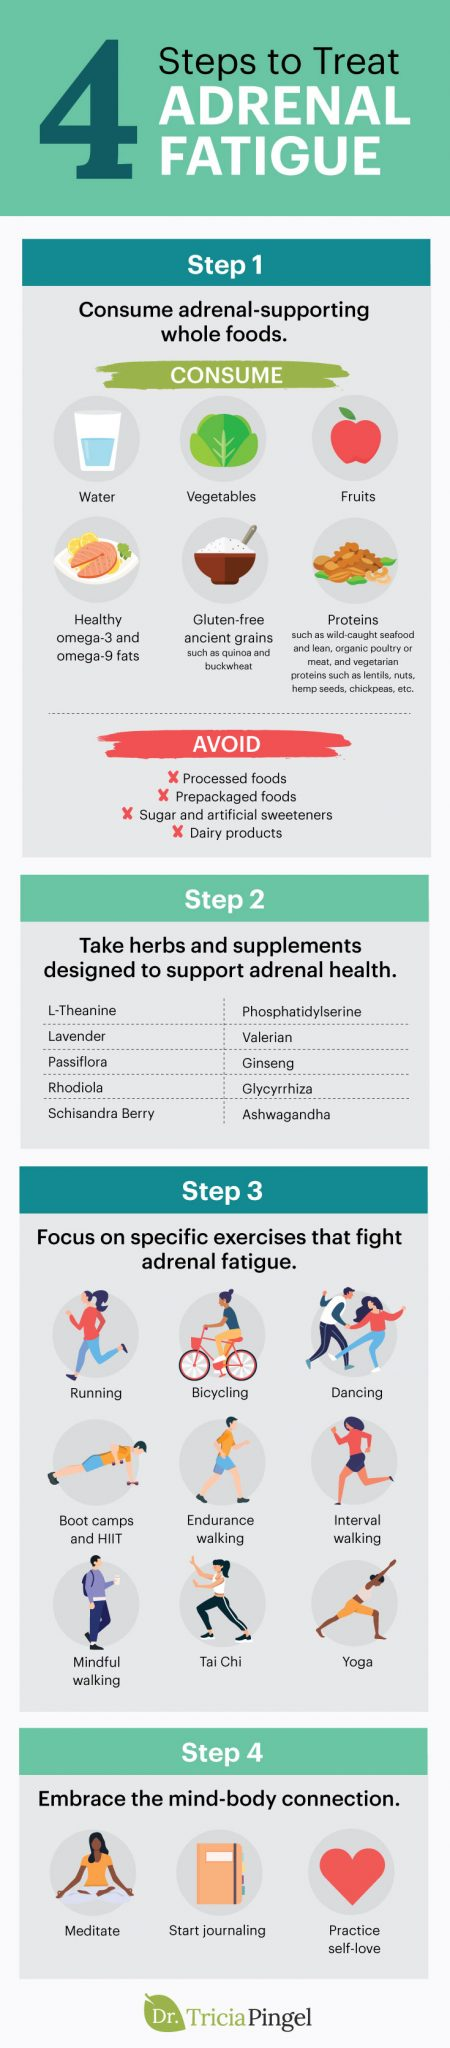 4 Steps to treat adrenal fatigue - Dr. Pingel